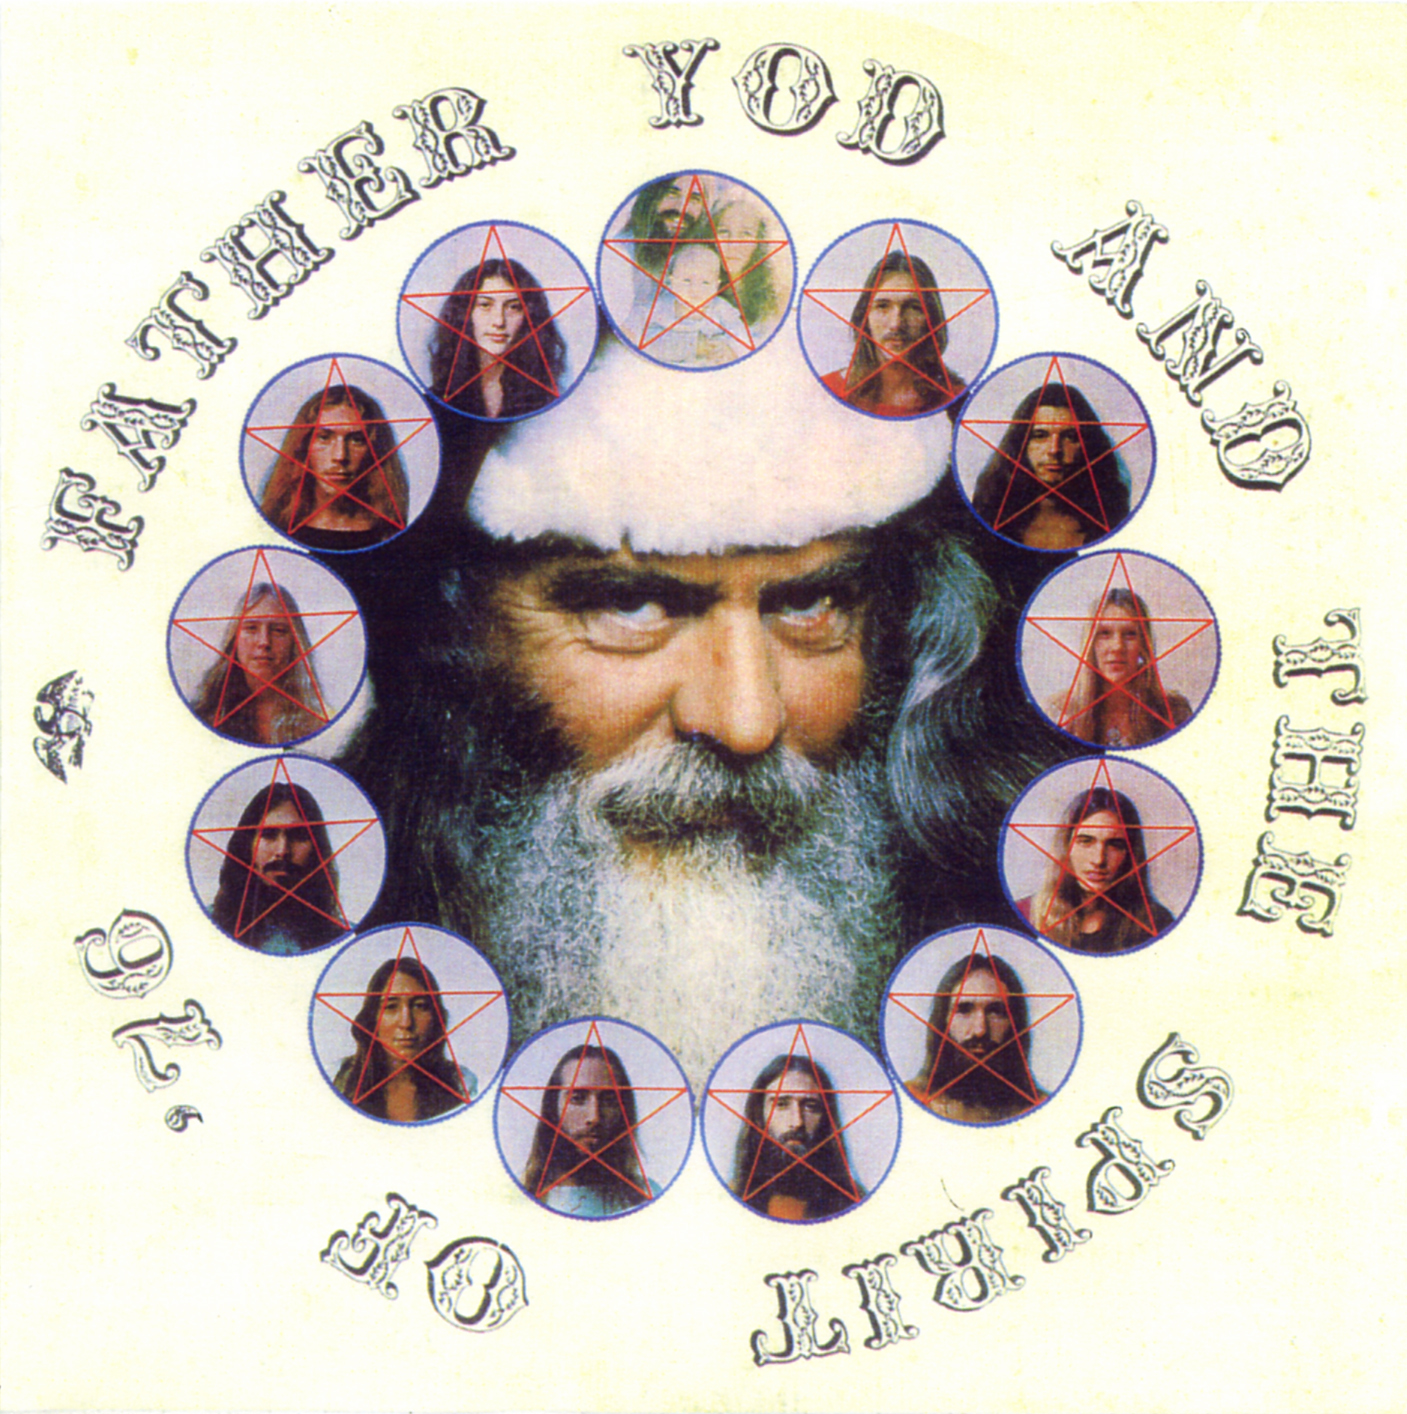 Father Yod And The Spirit Of '76 - Kohoutek